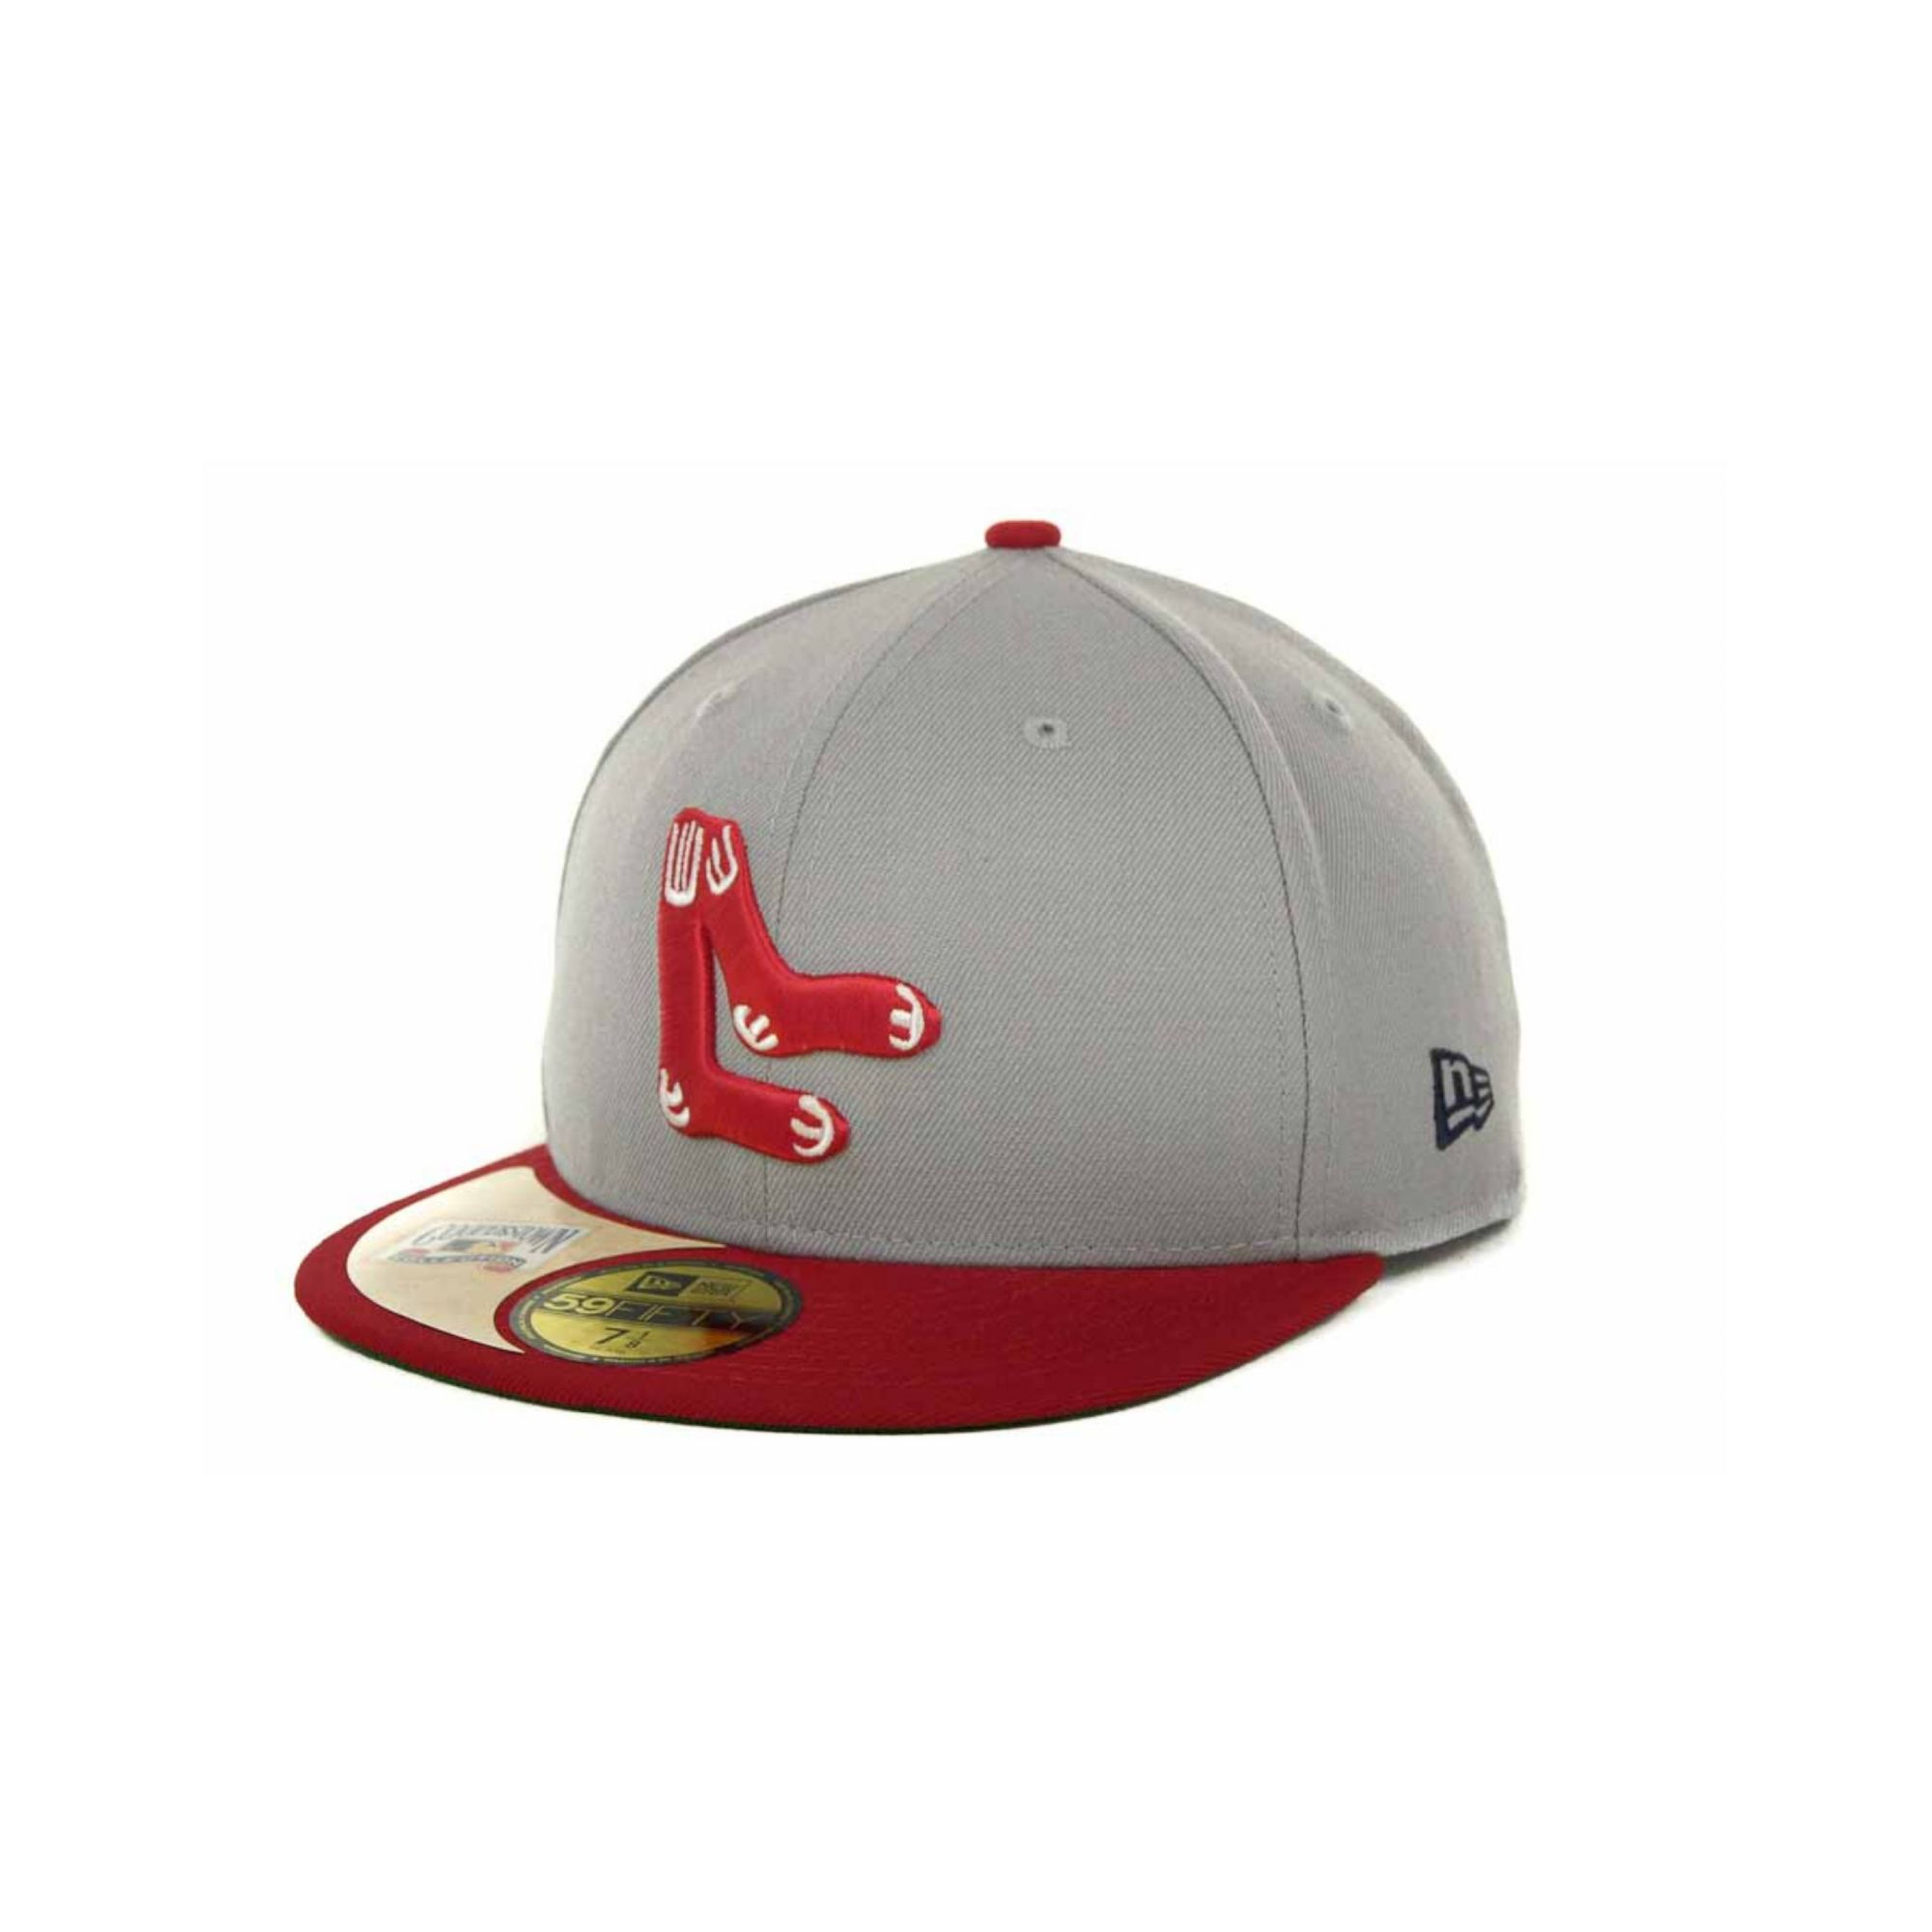 9733fc69 ... discount code for lyst ktz boston red sox cooperstown patch 59fifty cap  in gray for men